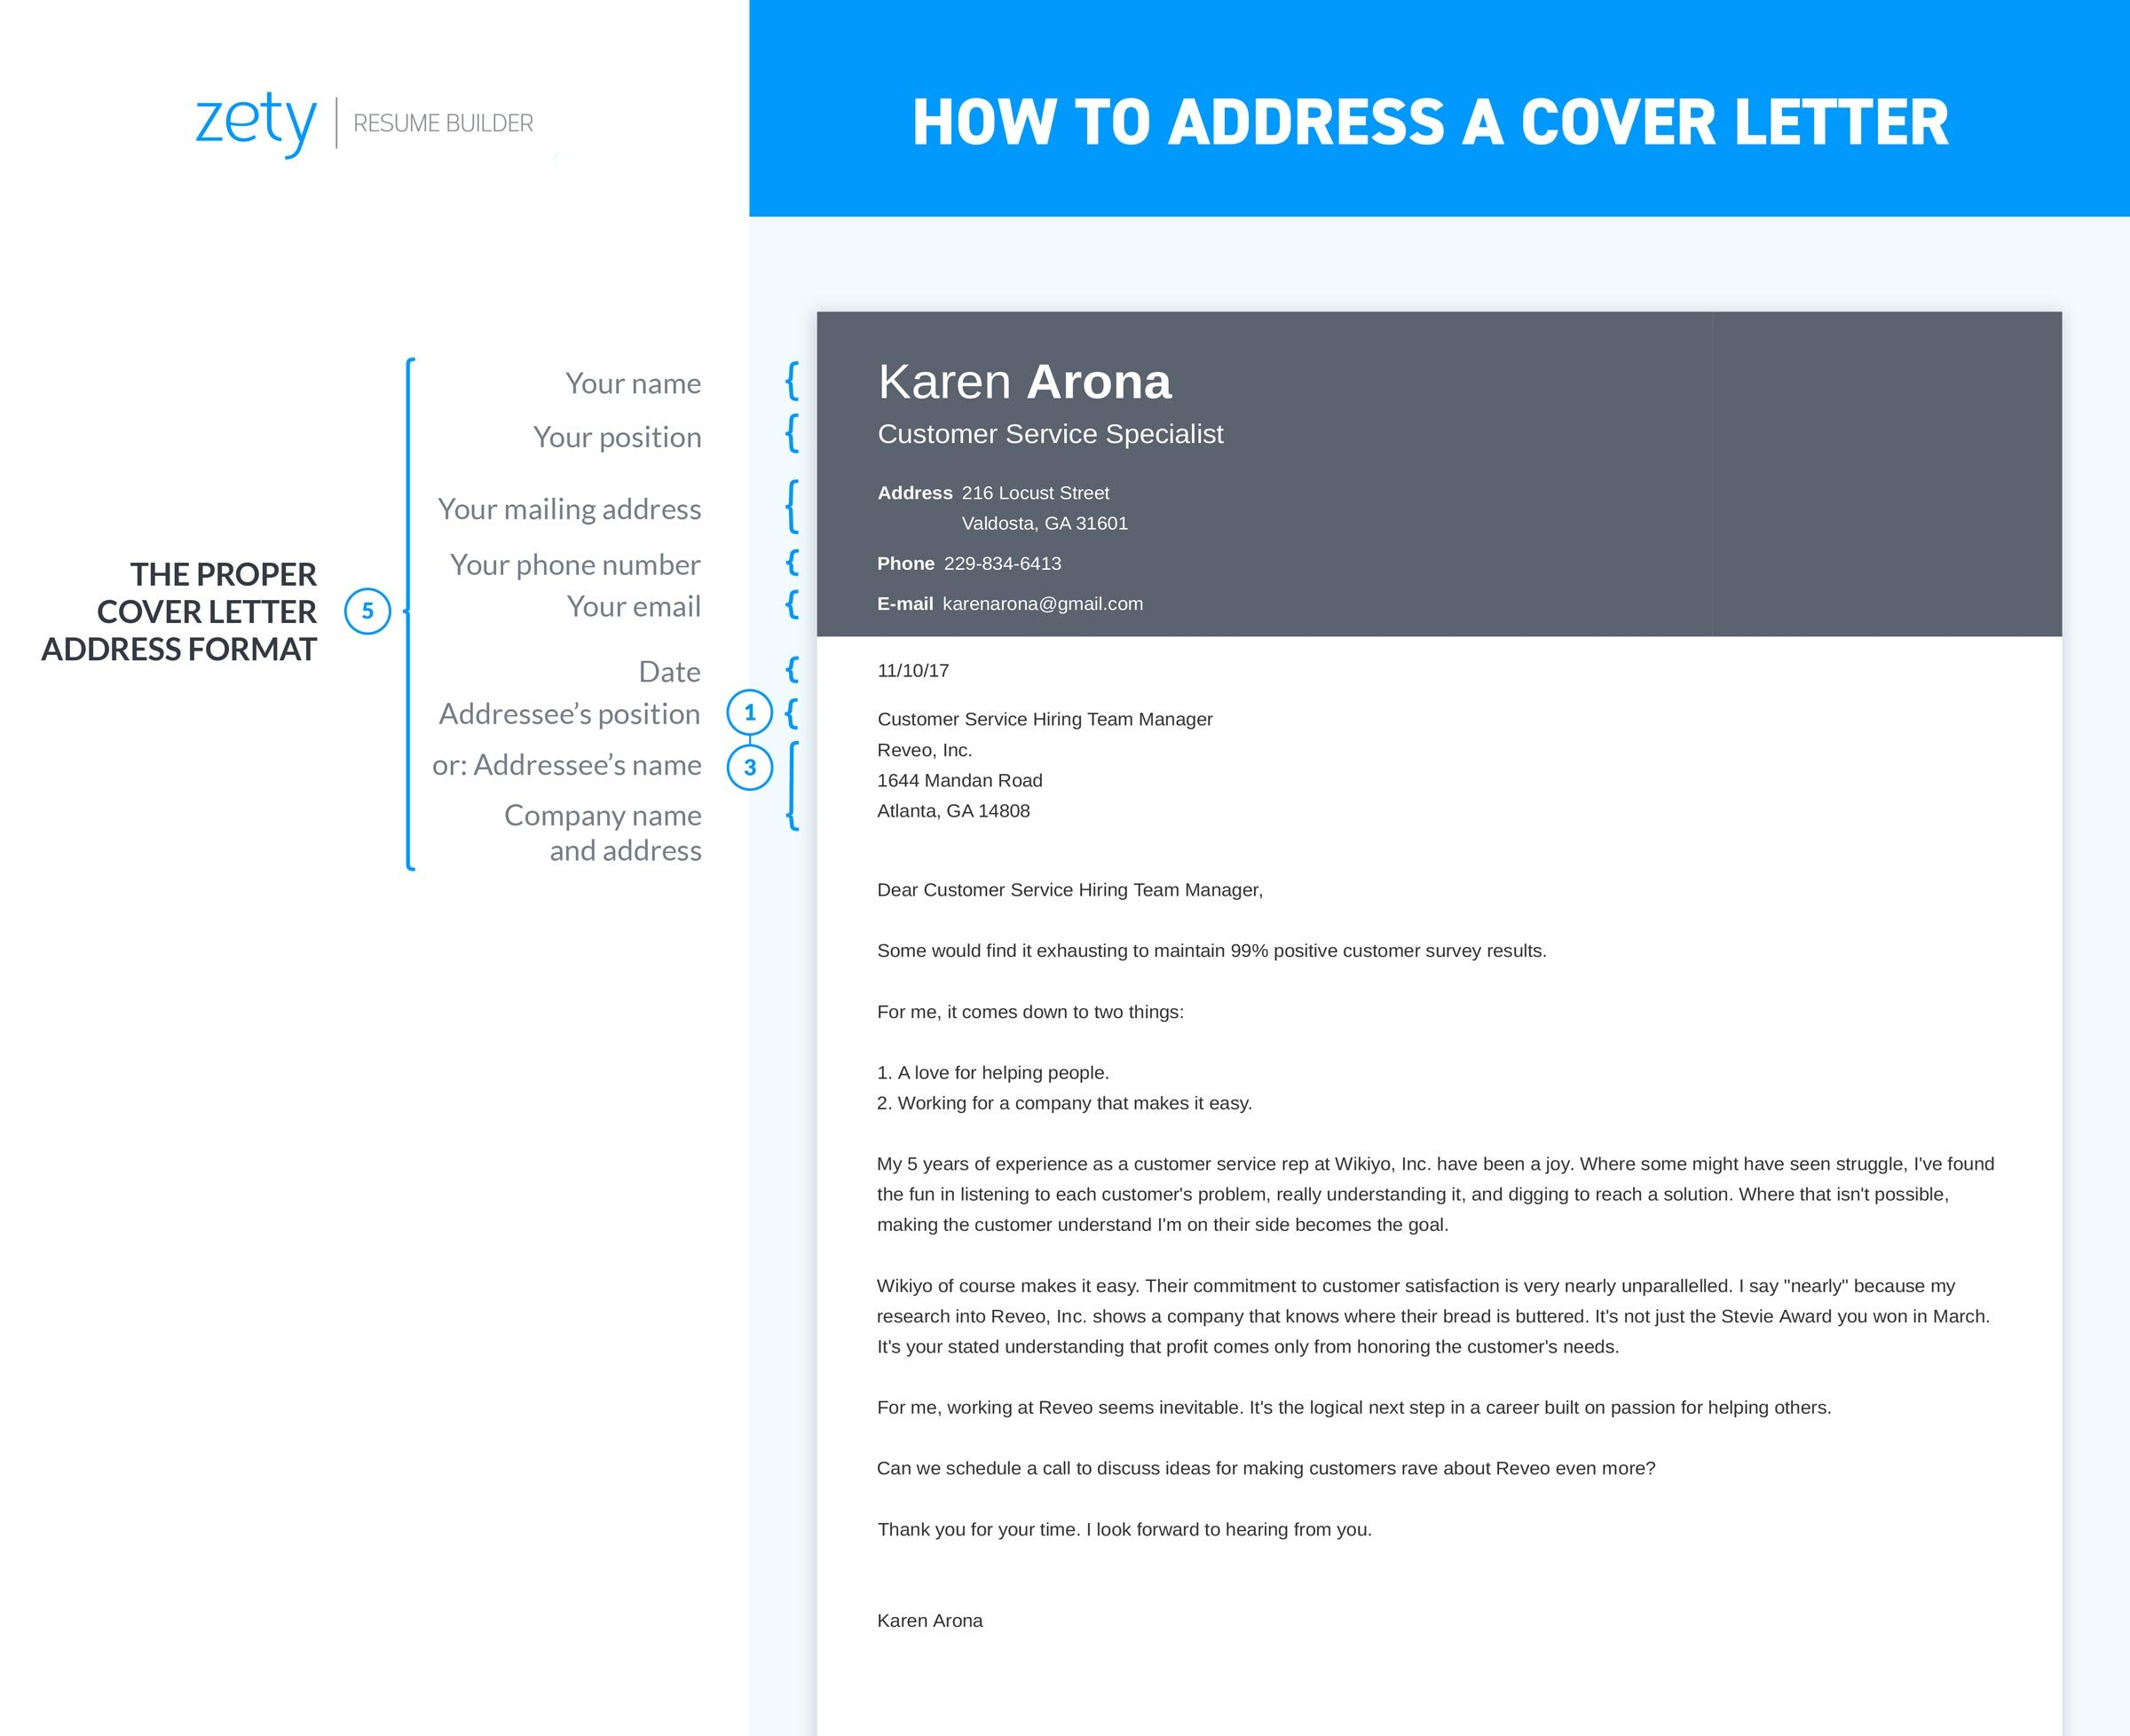 who do you address a cover letter to how to address a cover letter sample amp guide 20 examples 25644